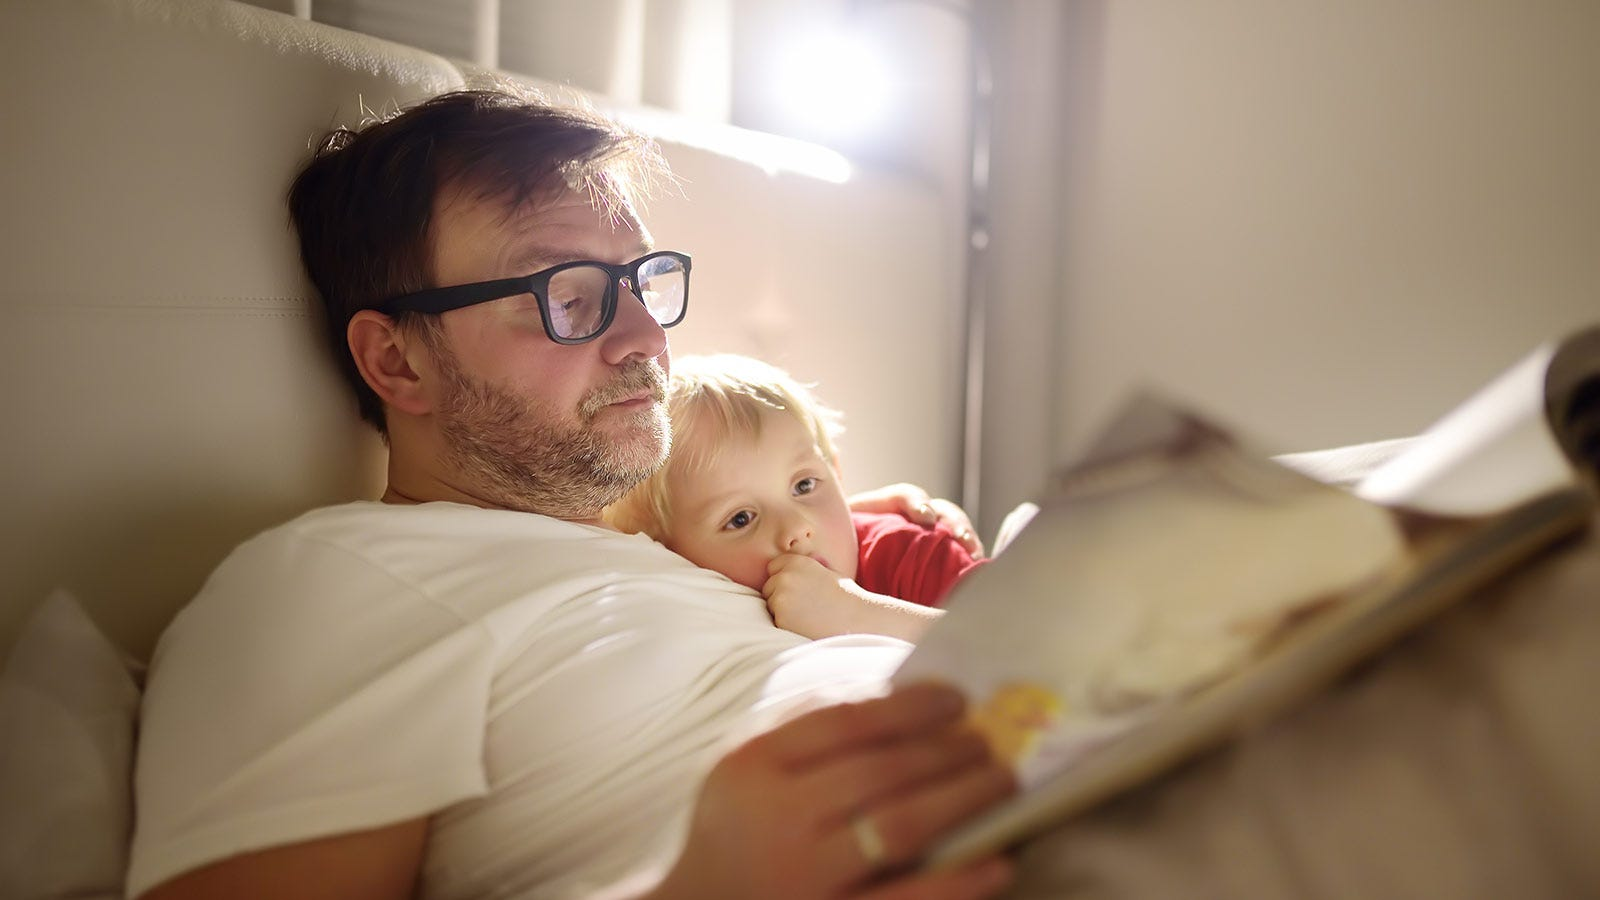 A man reading a book to a child at bedtime.